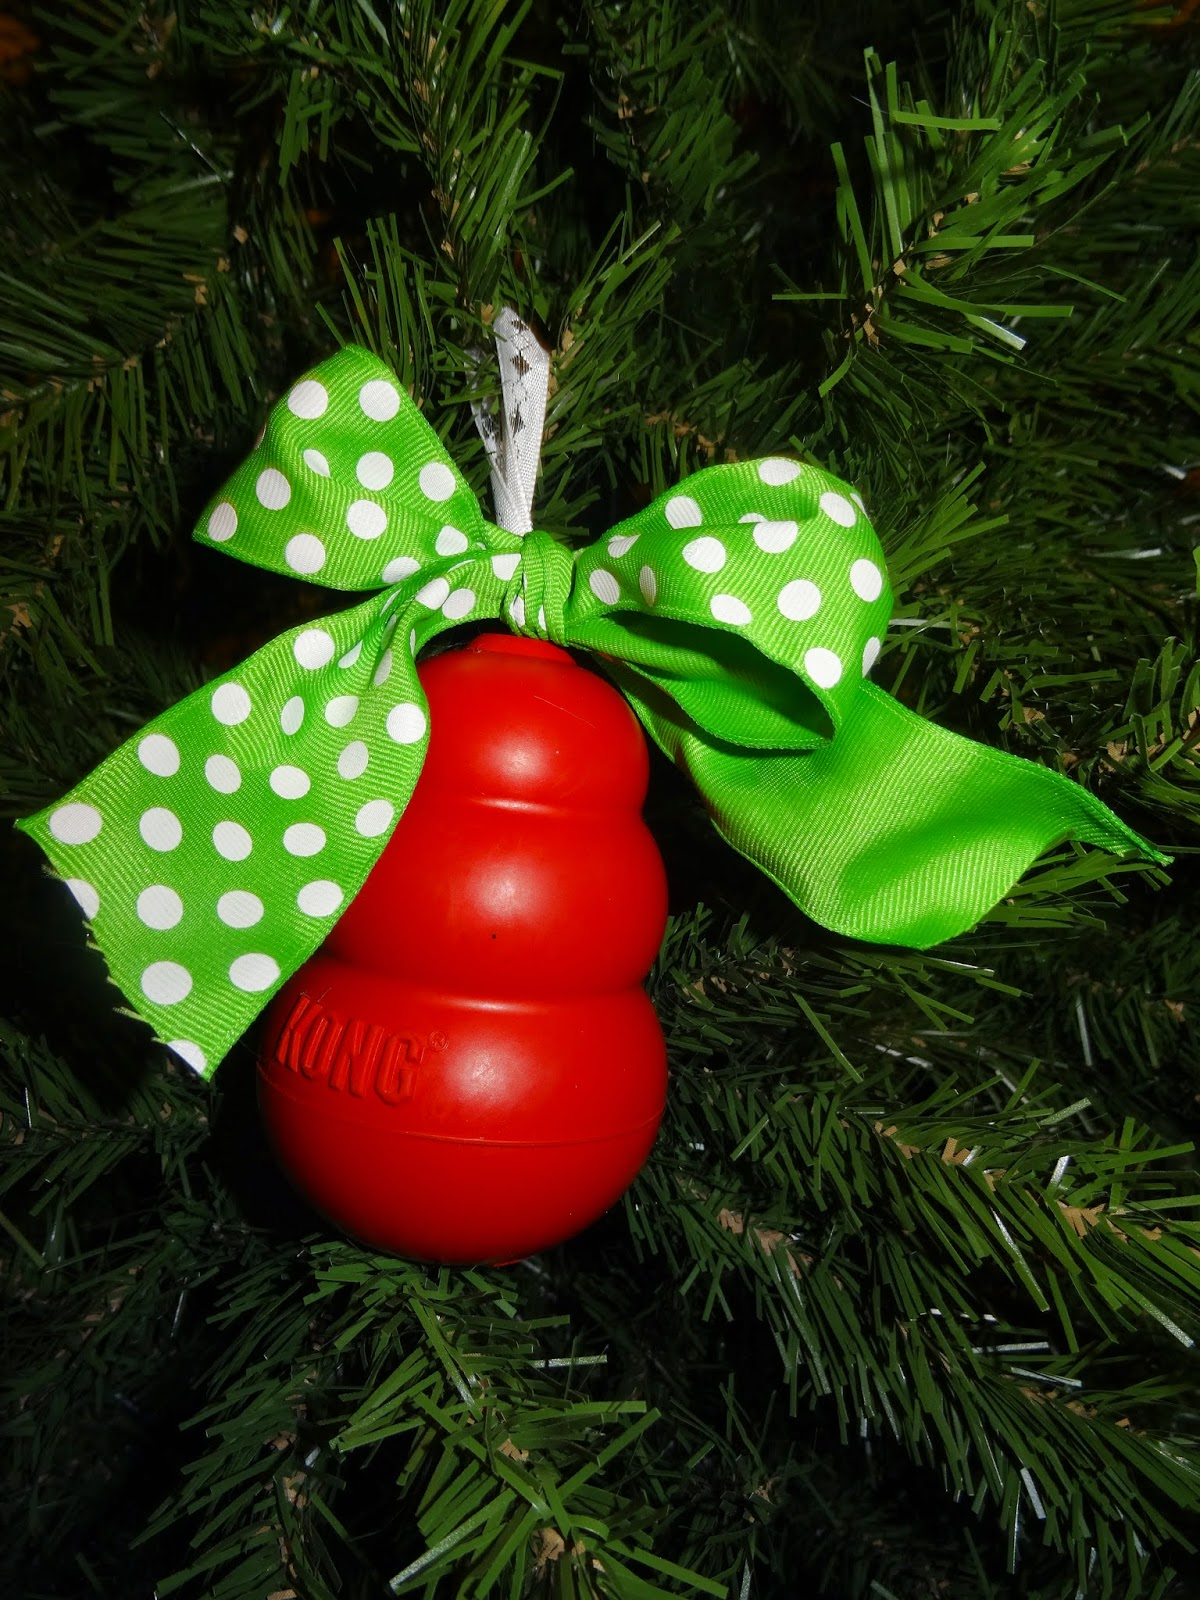 Dog themed christmas ornaments - And It Will Look Great On A Dog Themed Christmas Tree